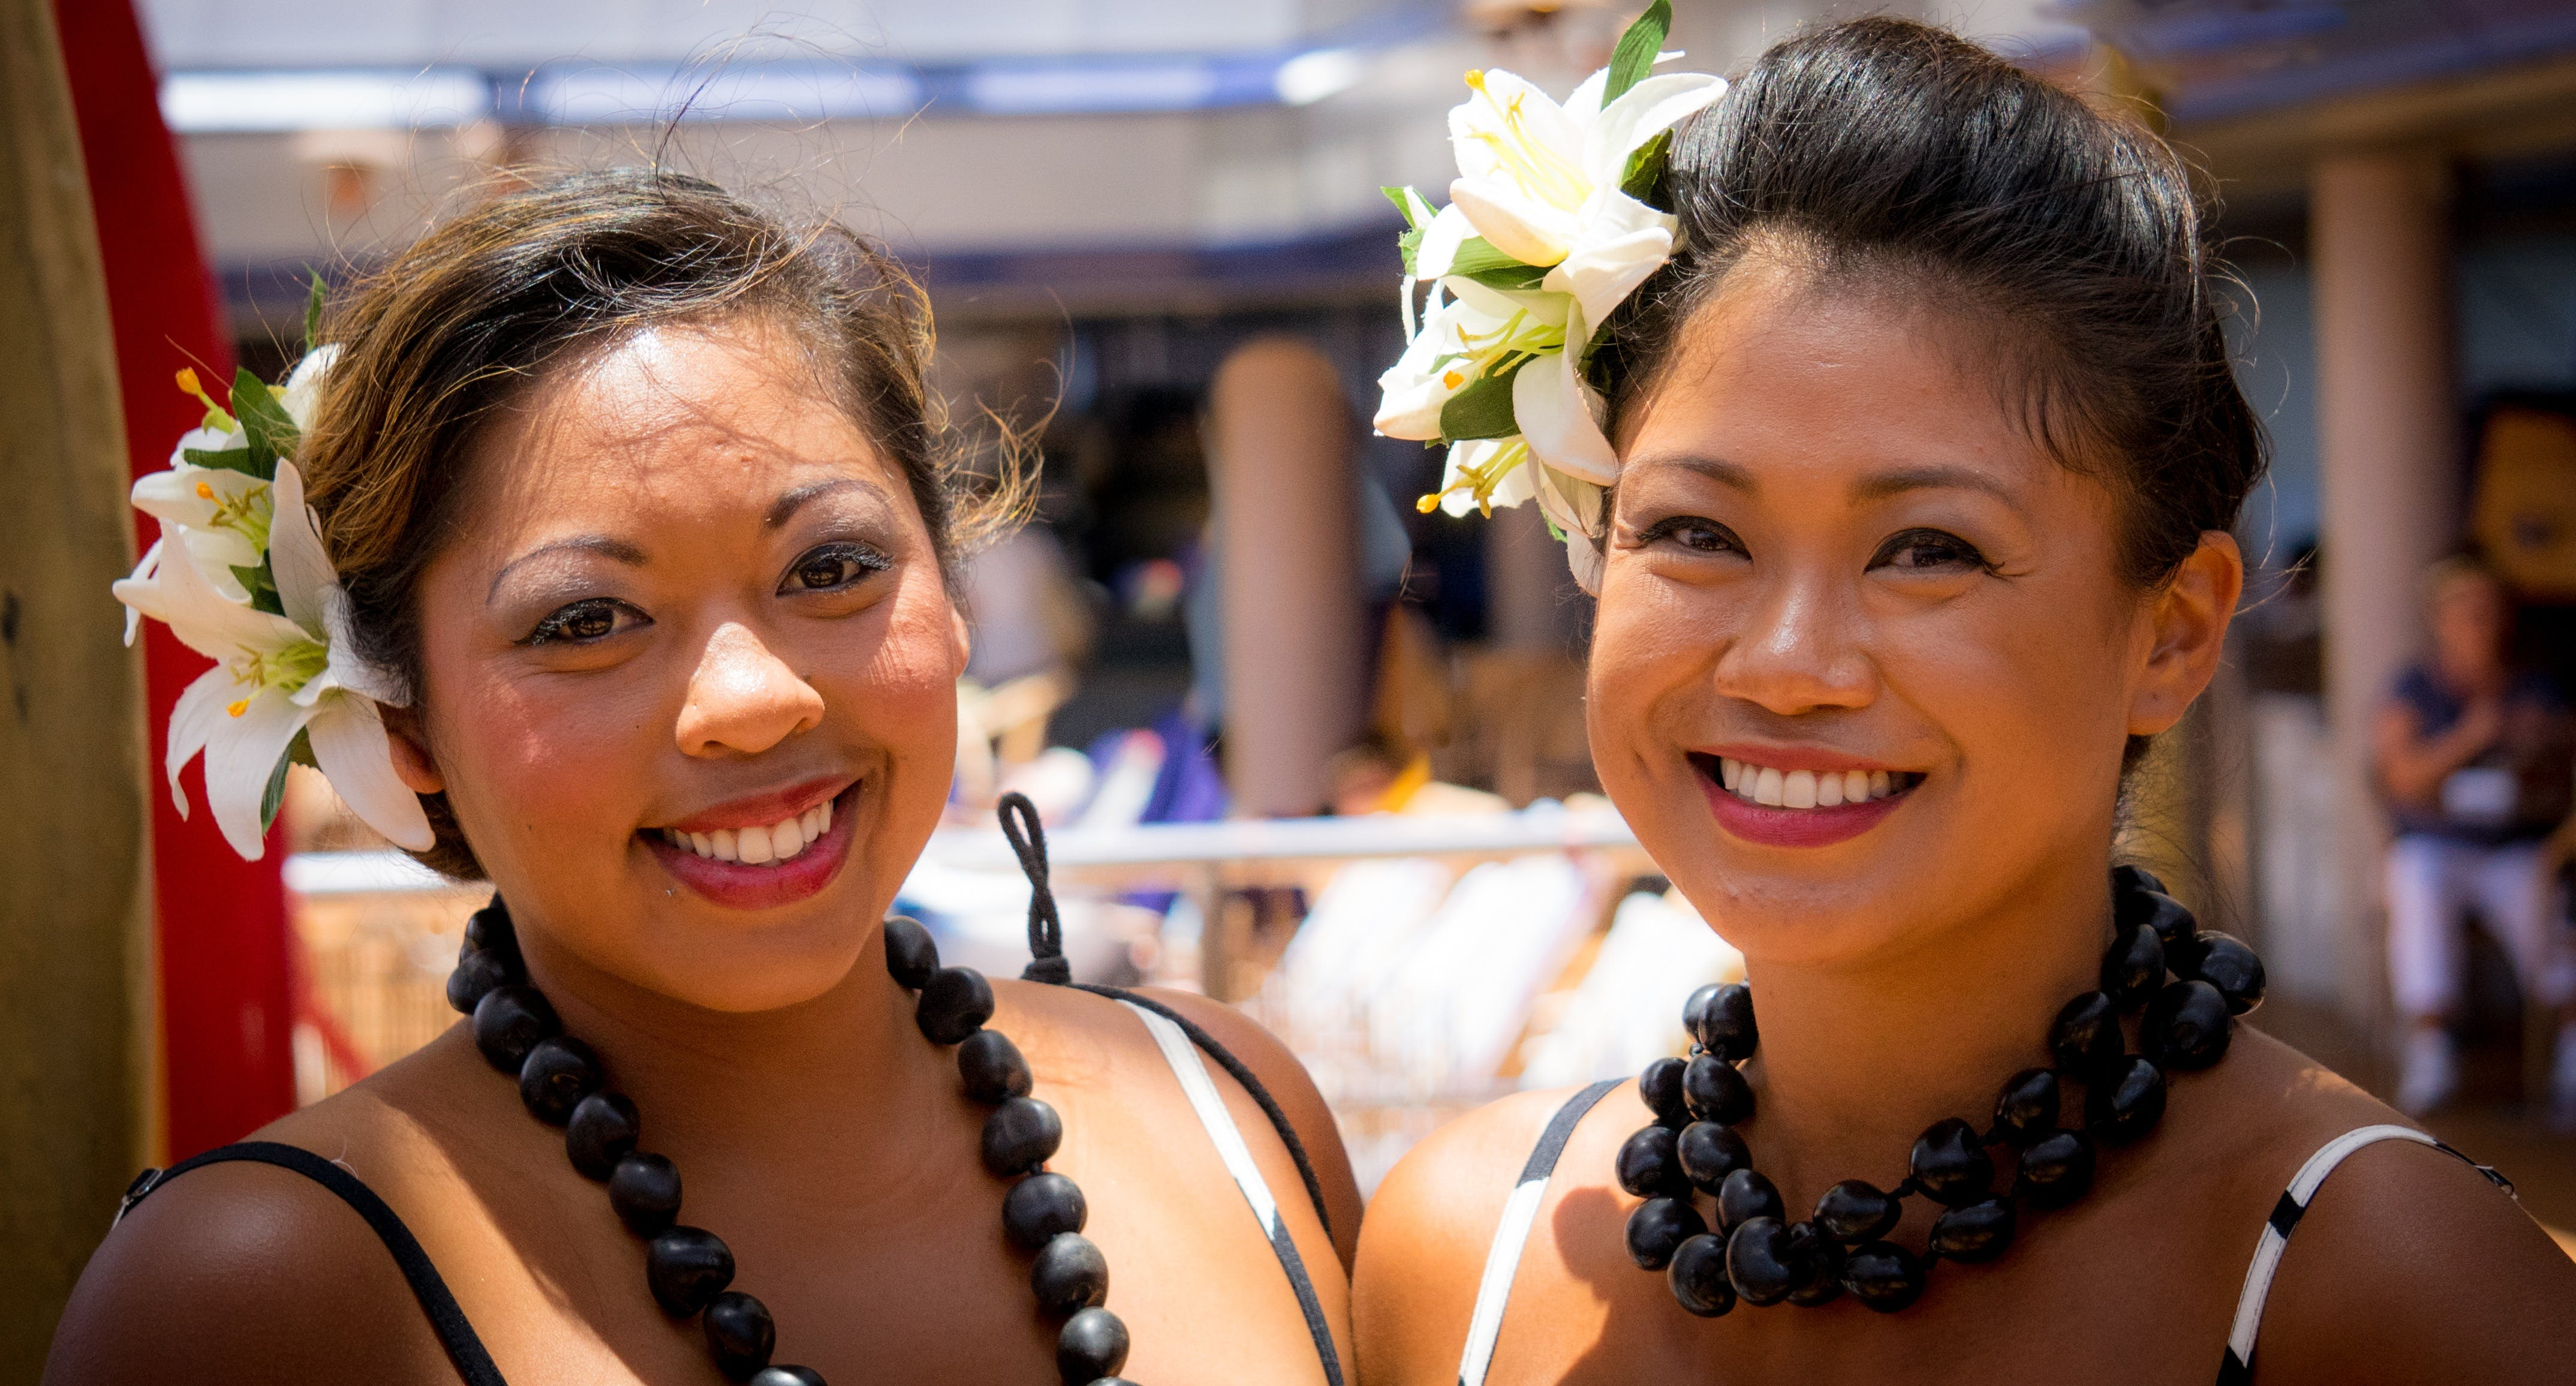 Two Smiling Woman Wearing White Floral Headdress